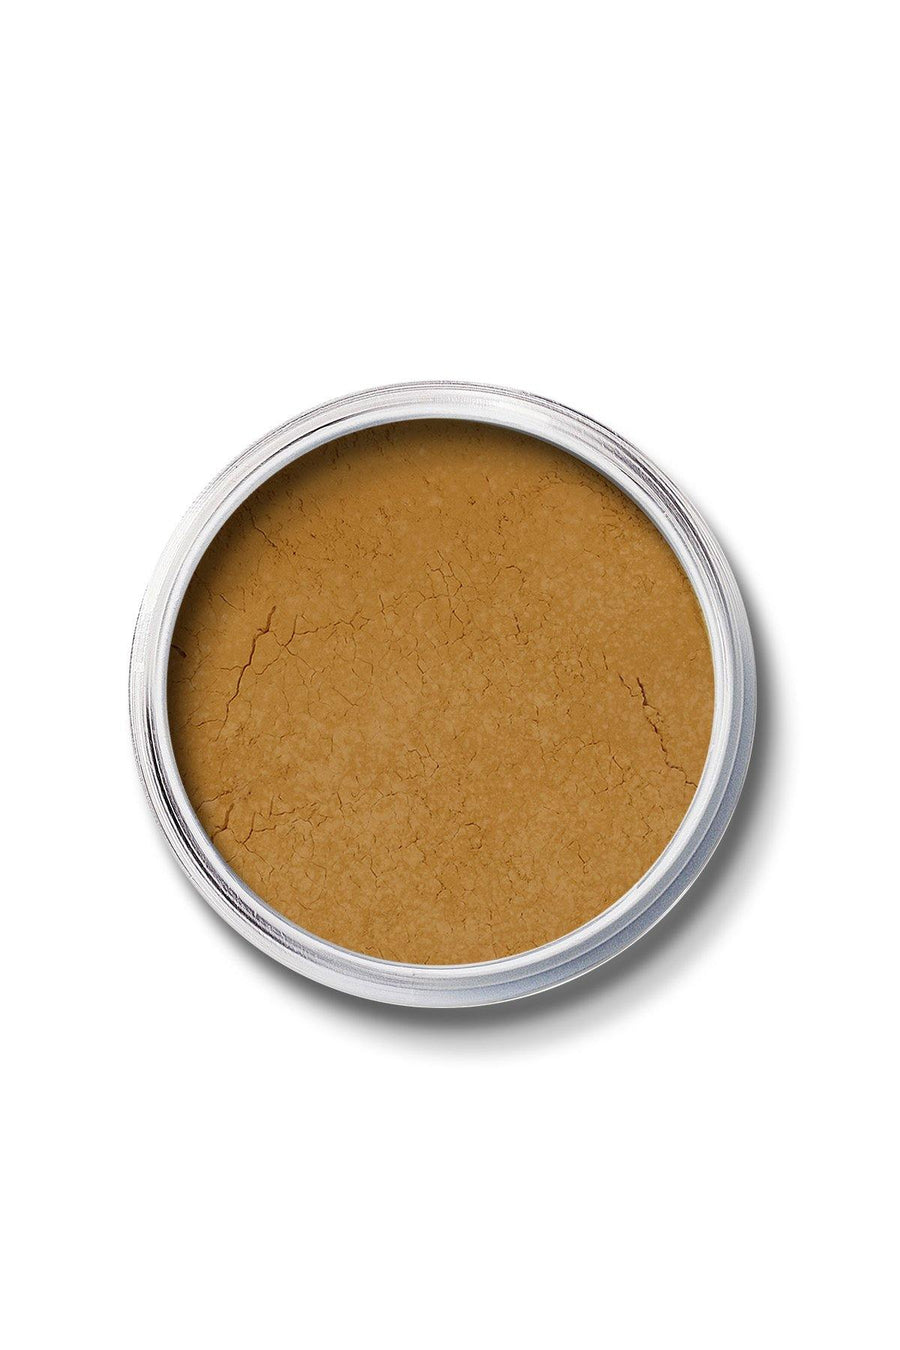 Mineral SPF 15 Foundation #12 - Dark Olive - Blend Mineral Cosmetics